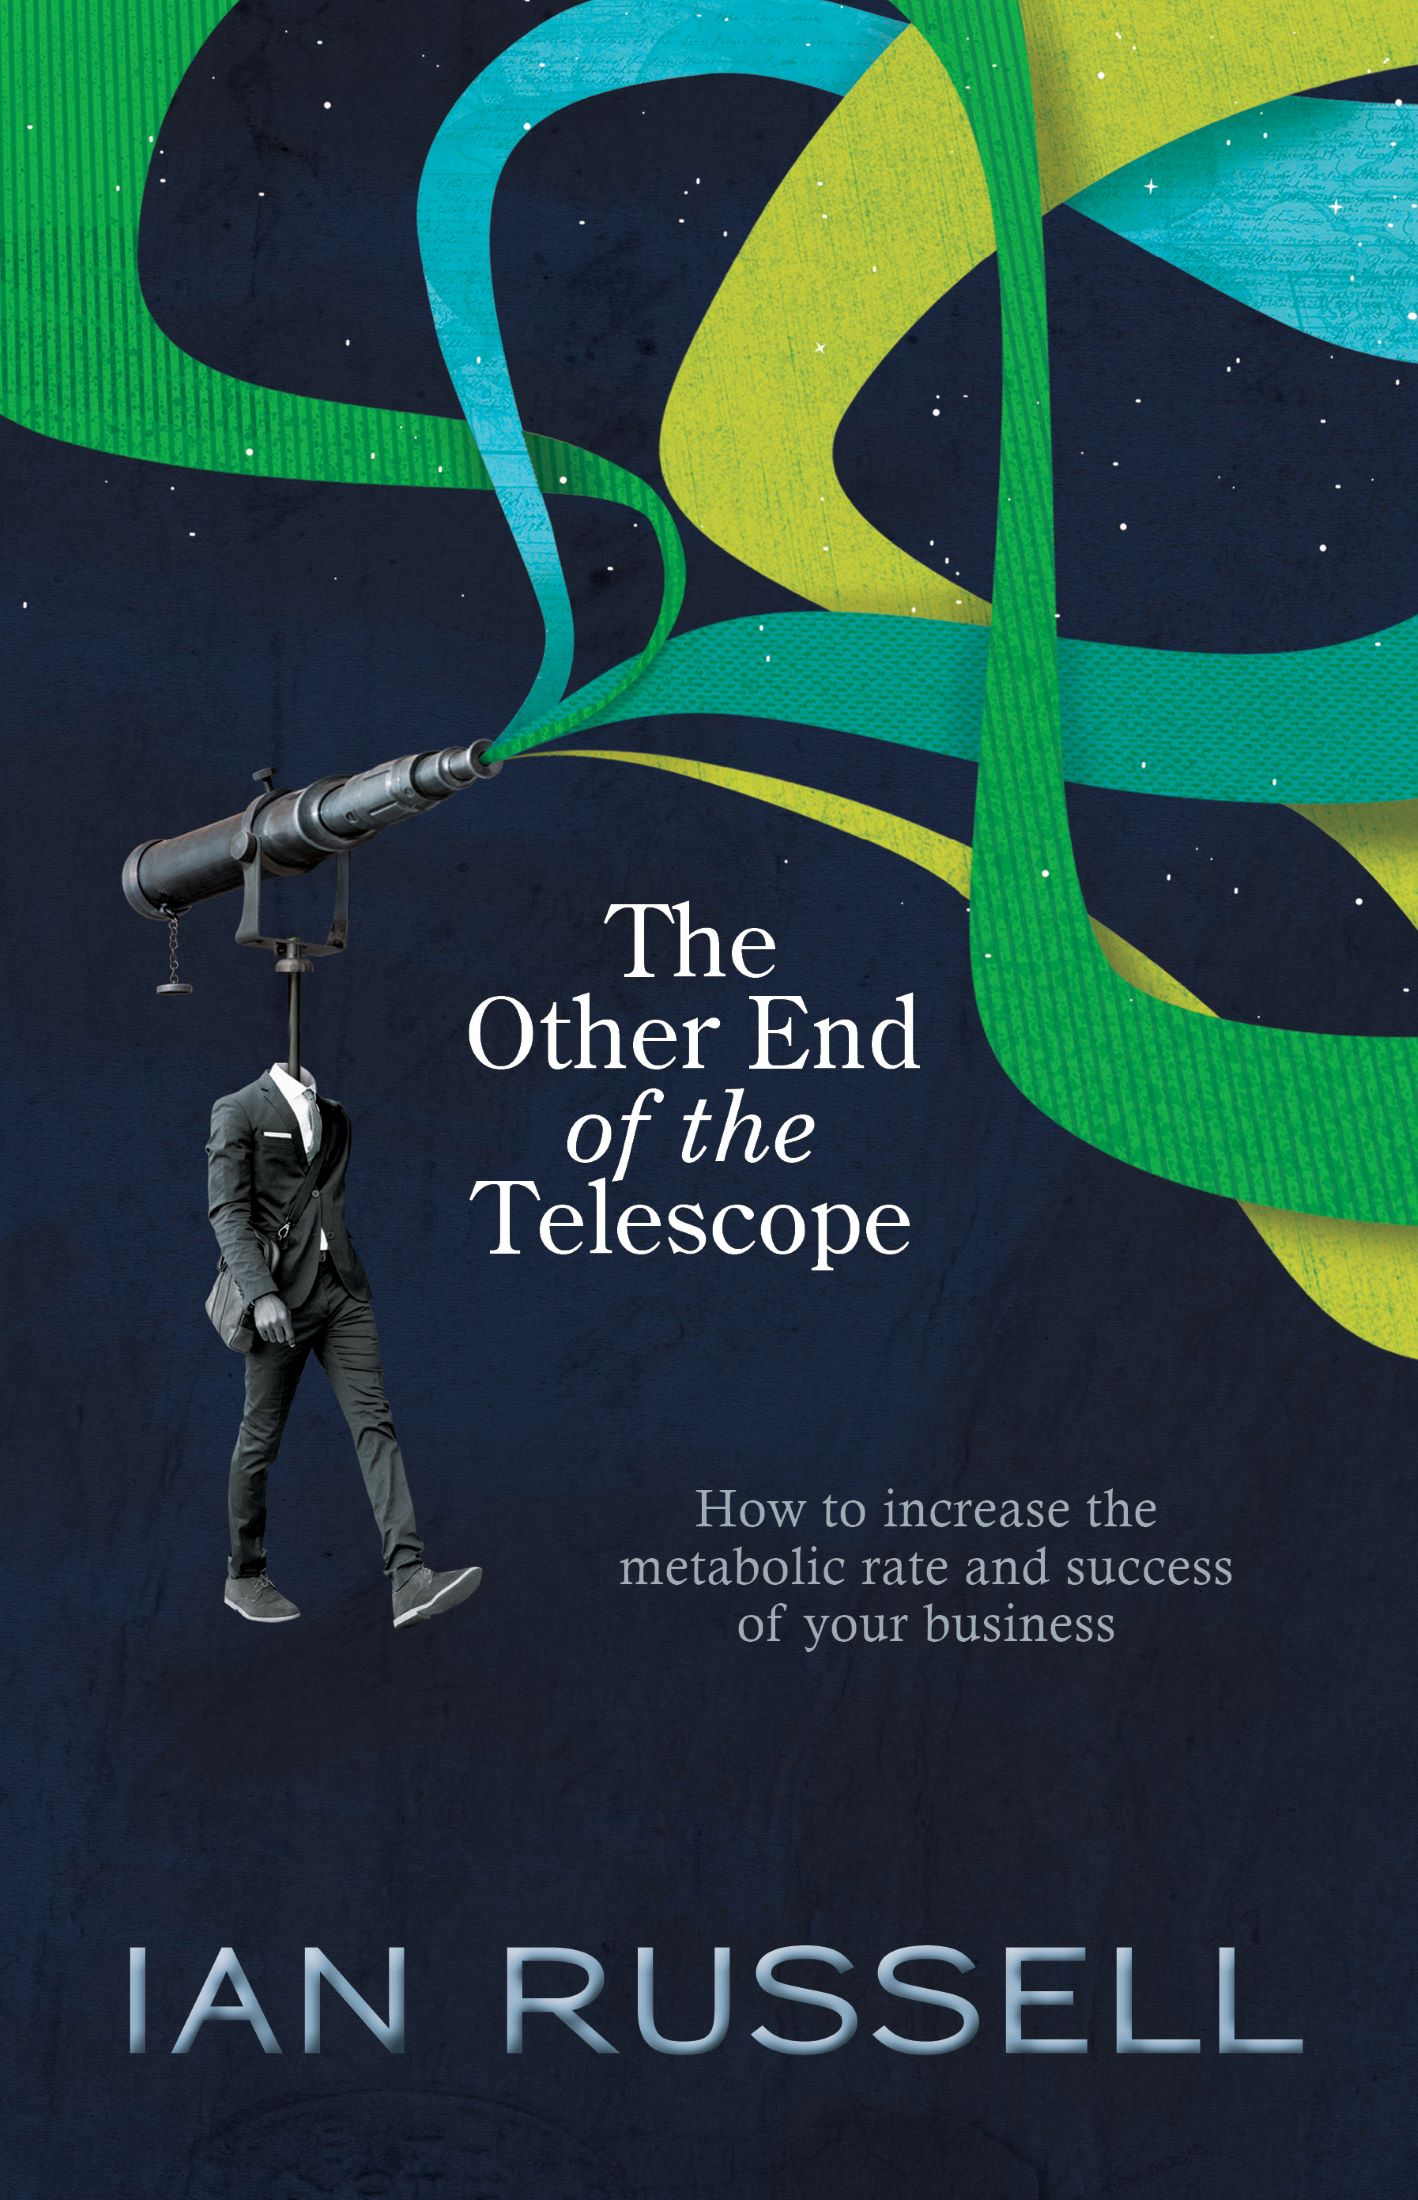 The Other End of the Telescope, by Ian Russell